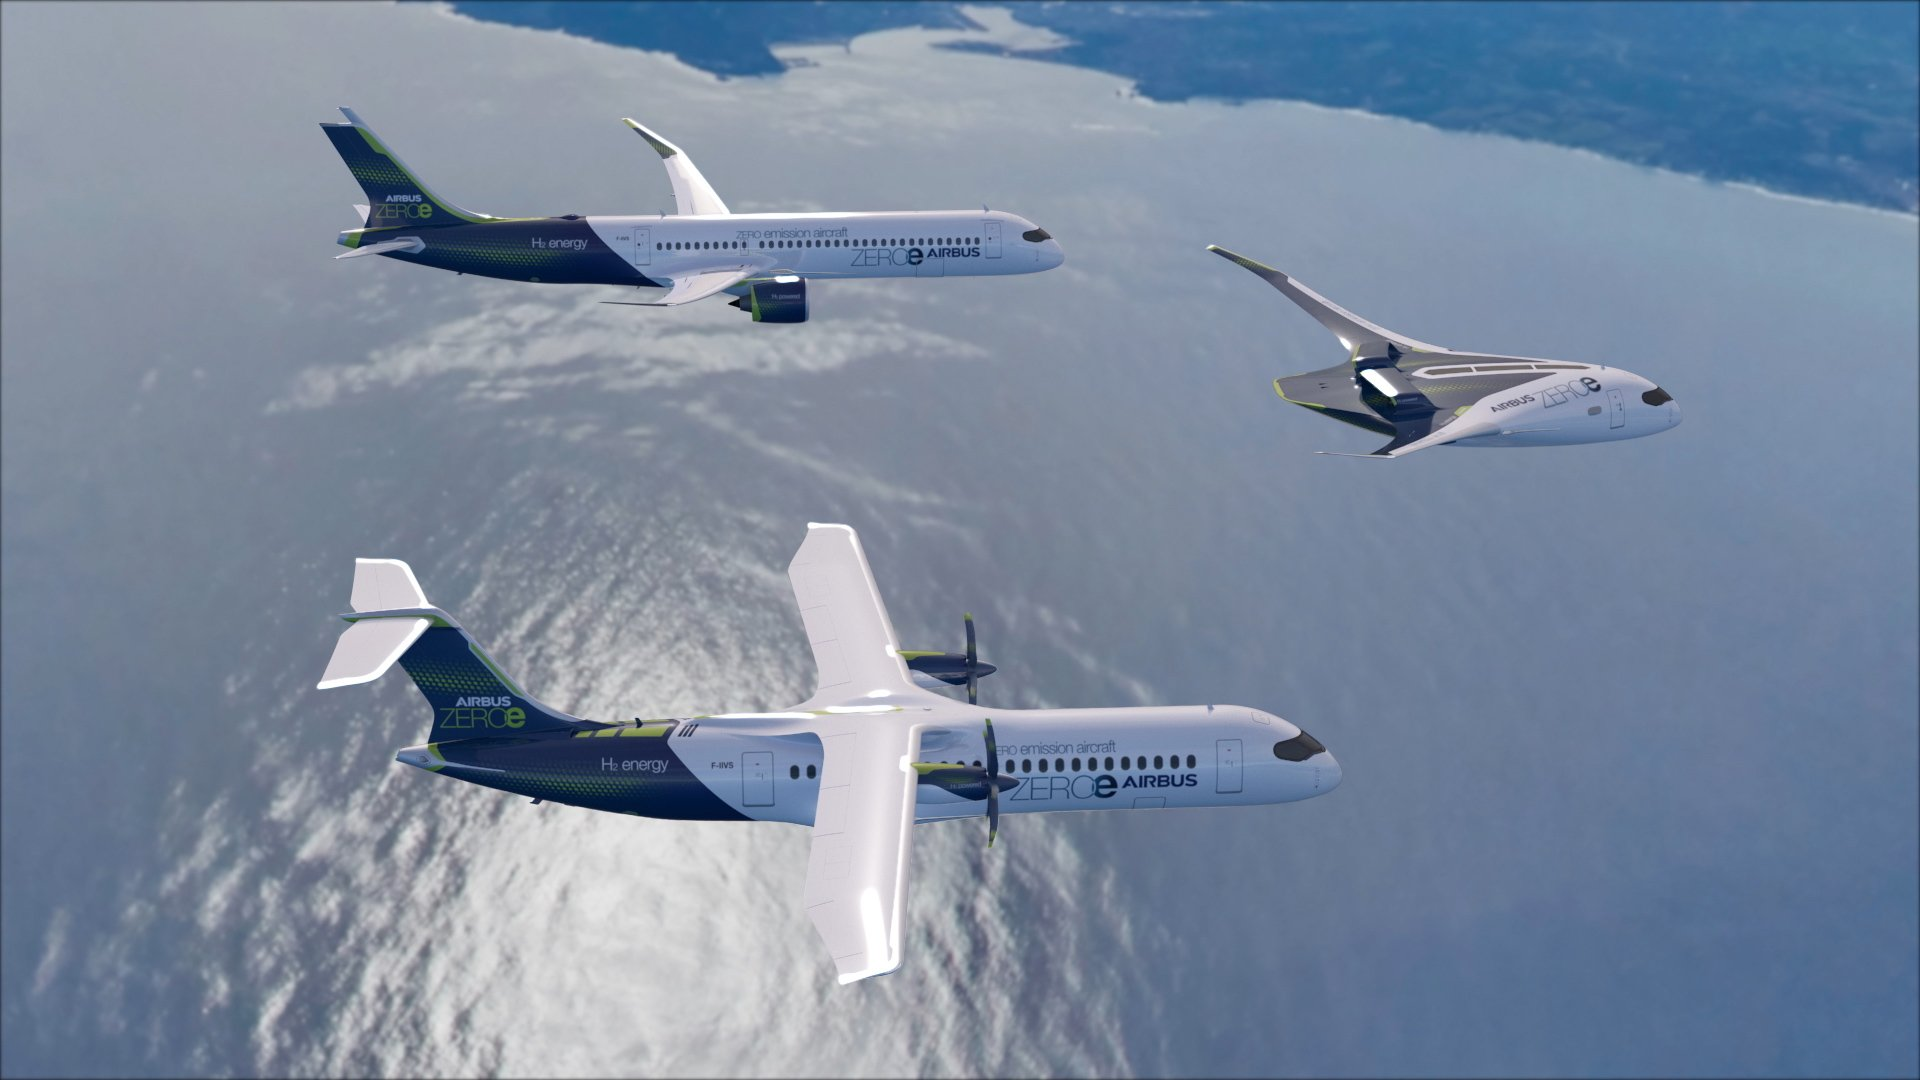 Airbus unveils the three zero-emission concept aircraft known as ZEROe. These concepts include turbofan, turboprop, and blended-wing body configurations that are powered by hydrogen propulsion. All ZEROe concepts are hydrogen-hybrid aircraft